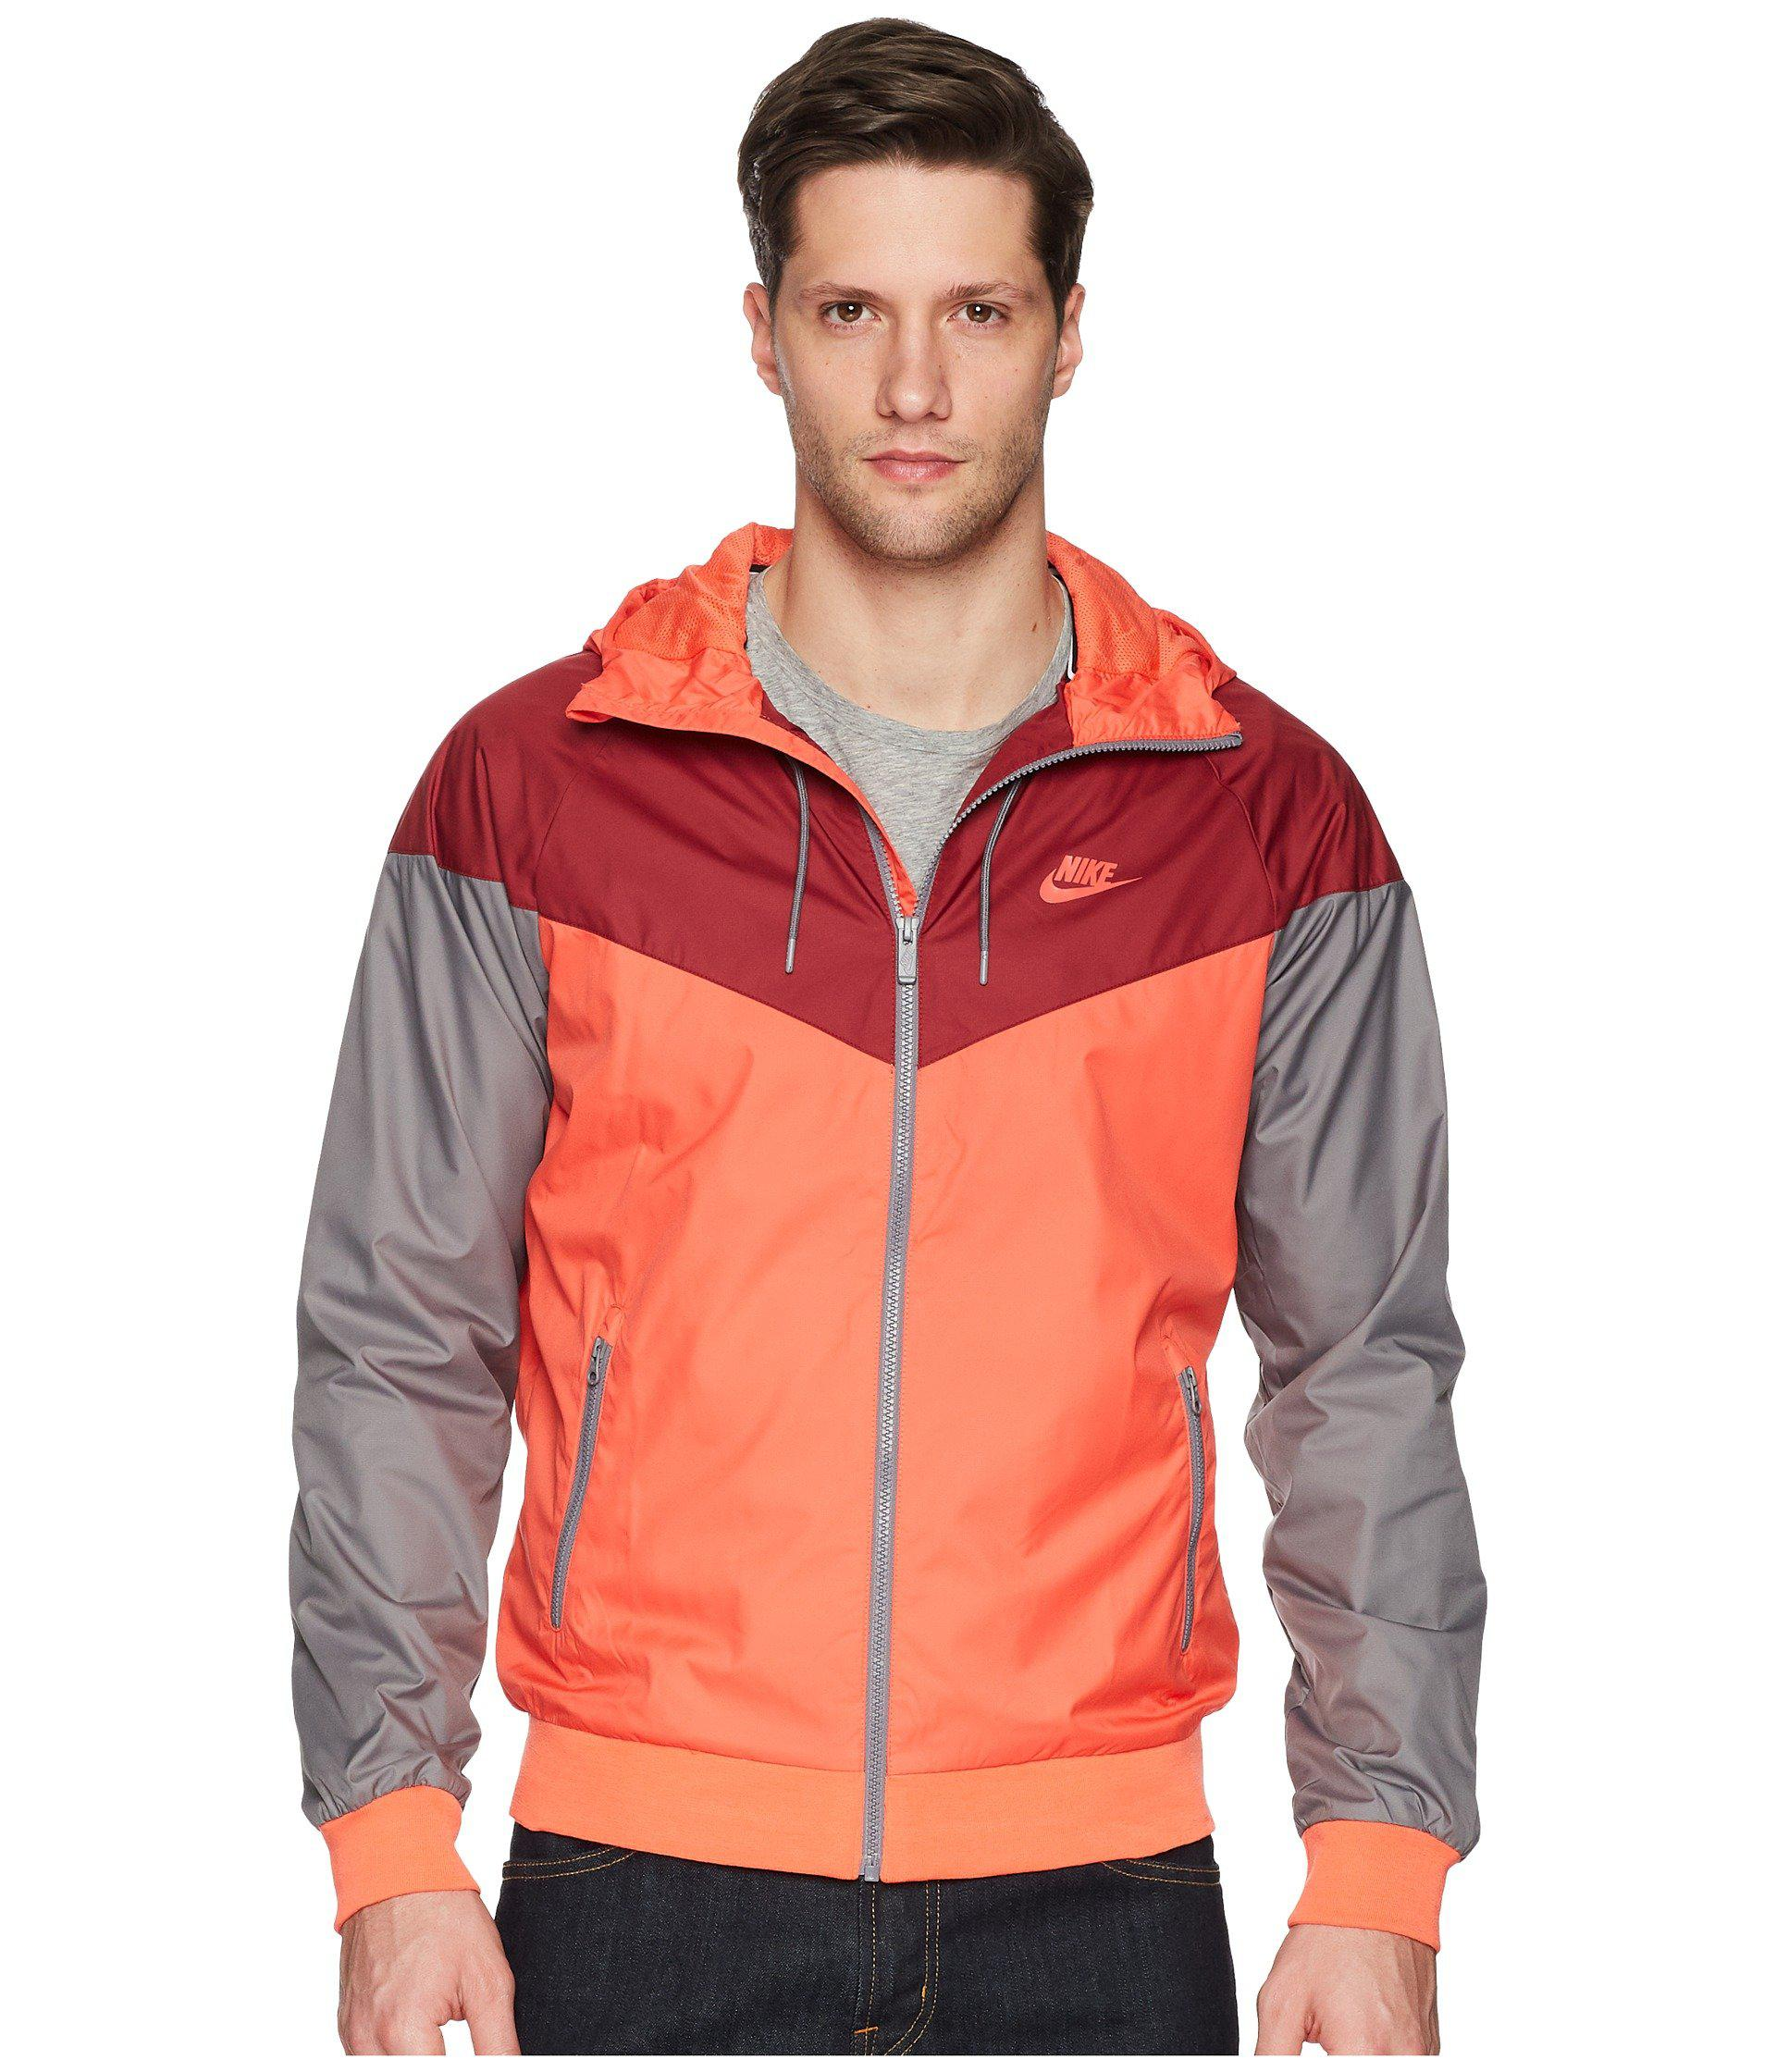 4b14d302382b Lyst - Nike Sportwear Windrunner Jacket in Red for Men - Save 8%